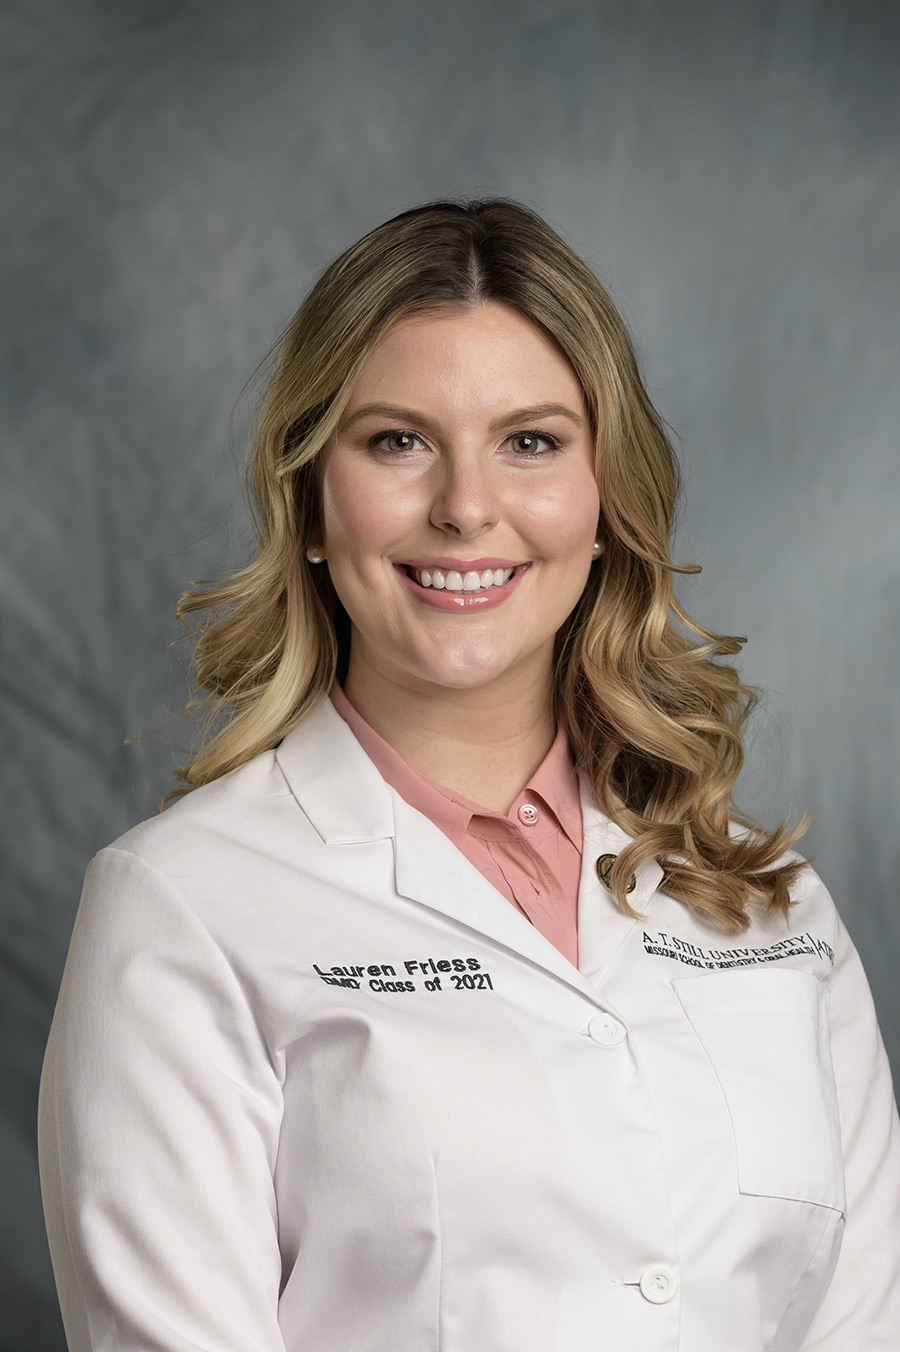 A photo of Dr. Lauren Friess who is the newest dentist in Wentzville, MO